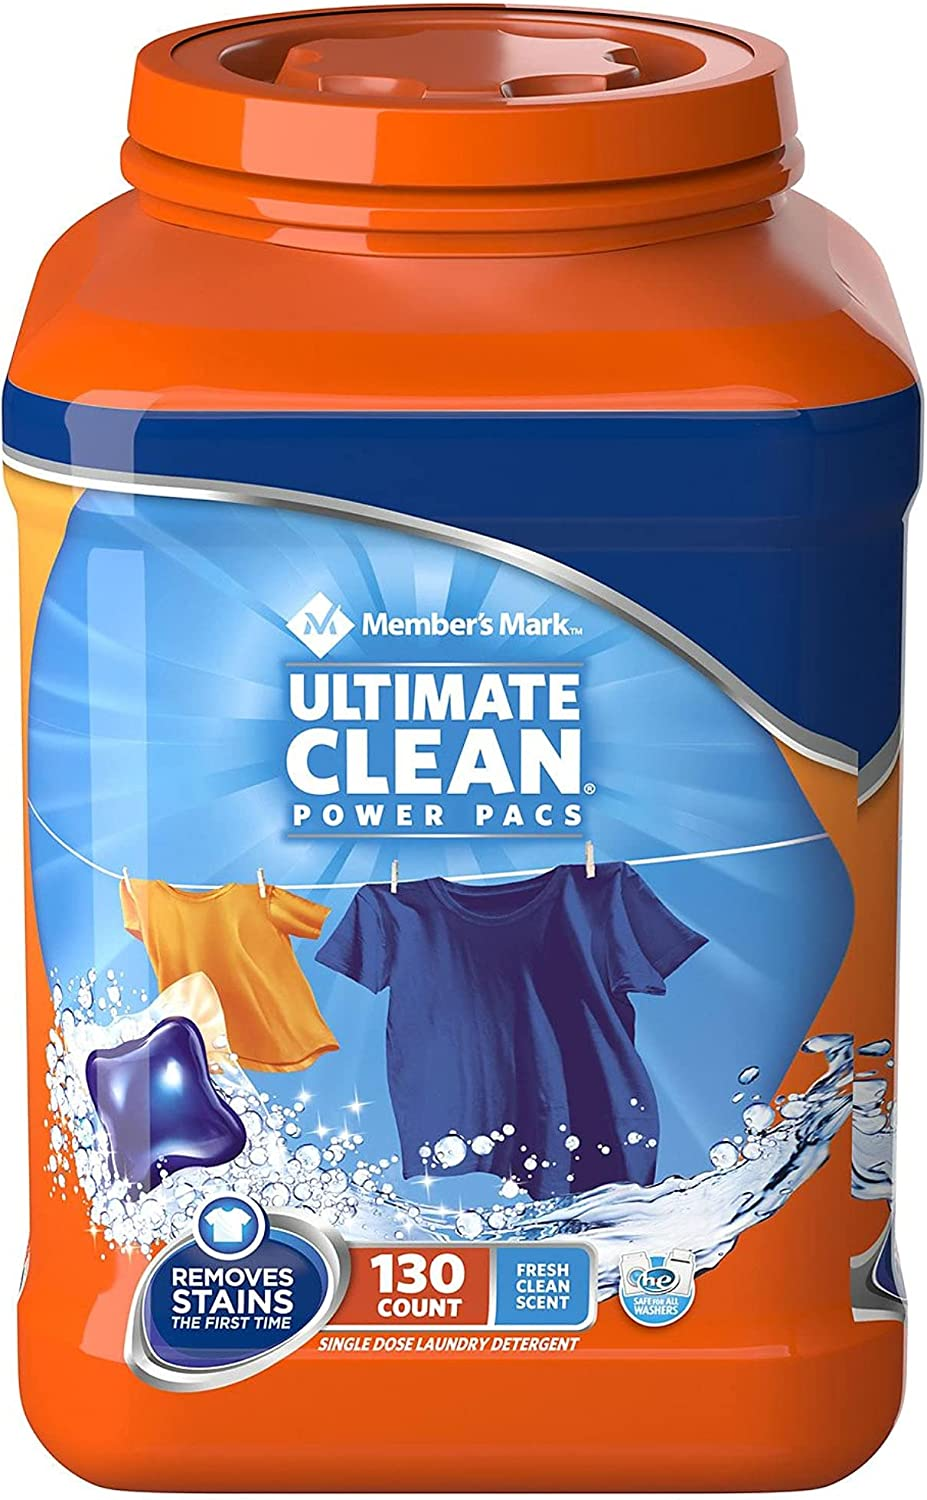 Member S Philadelphia Mall Mark Ultimate Clean Laundry L Pacs 130 Detergent Special Campaign Power